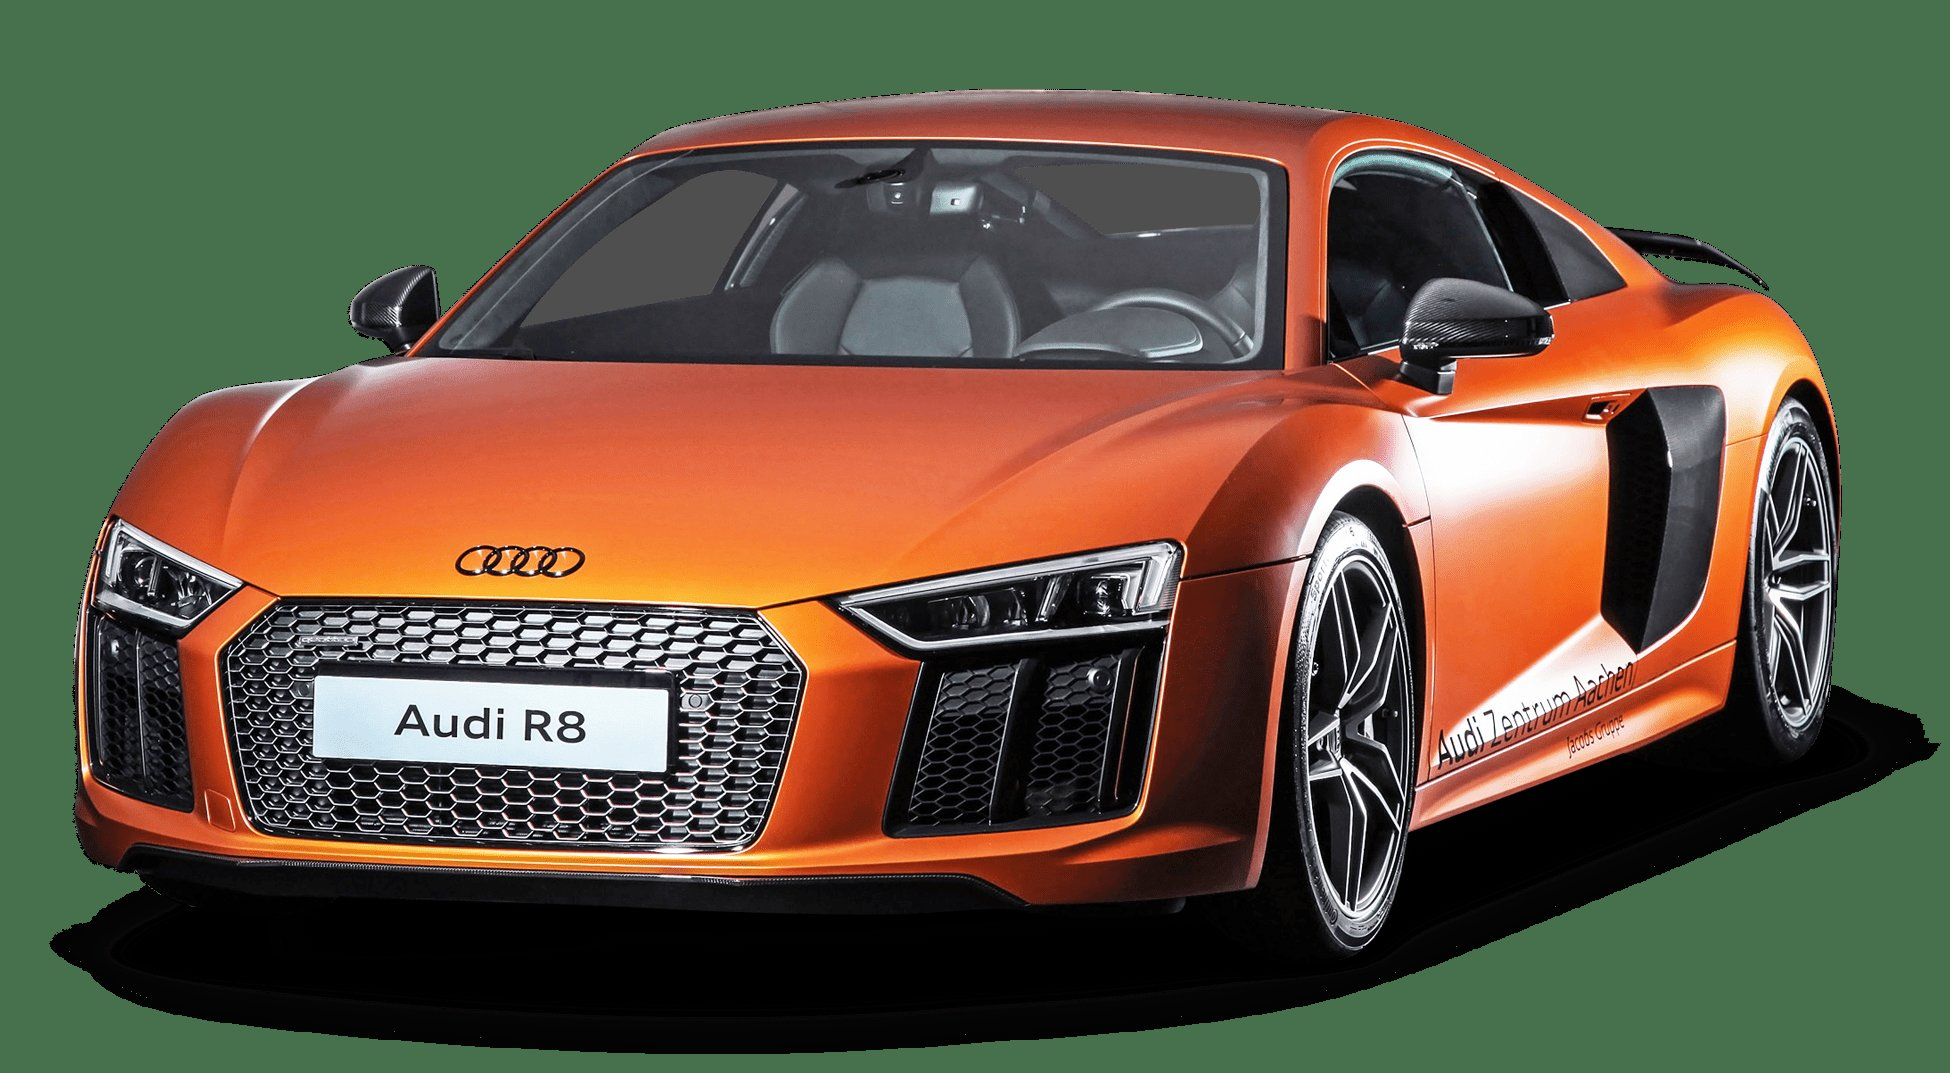 Latest Orange Audi R8 Car Png Image Pngpix Free Download